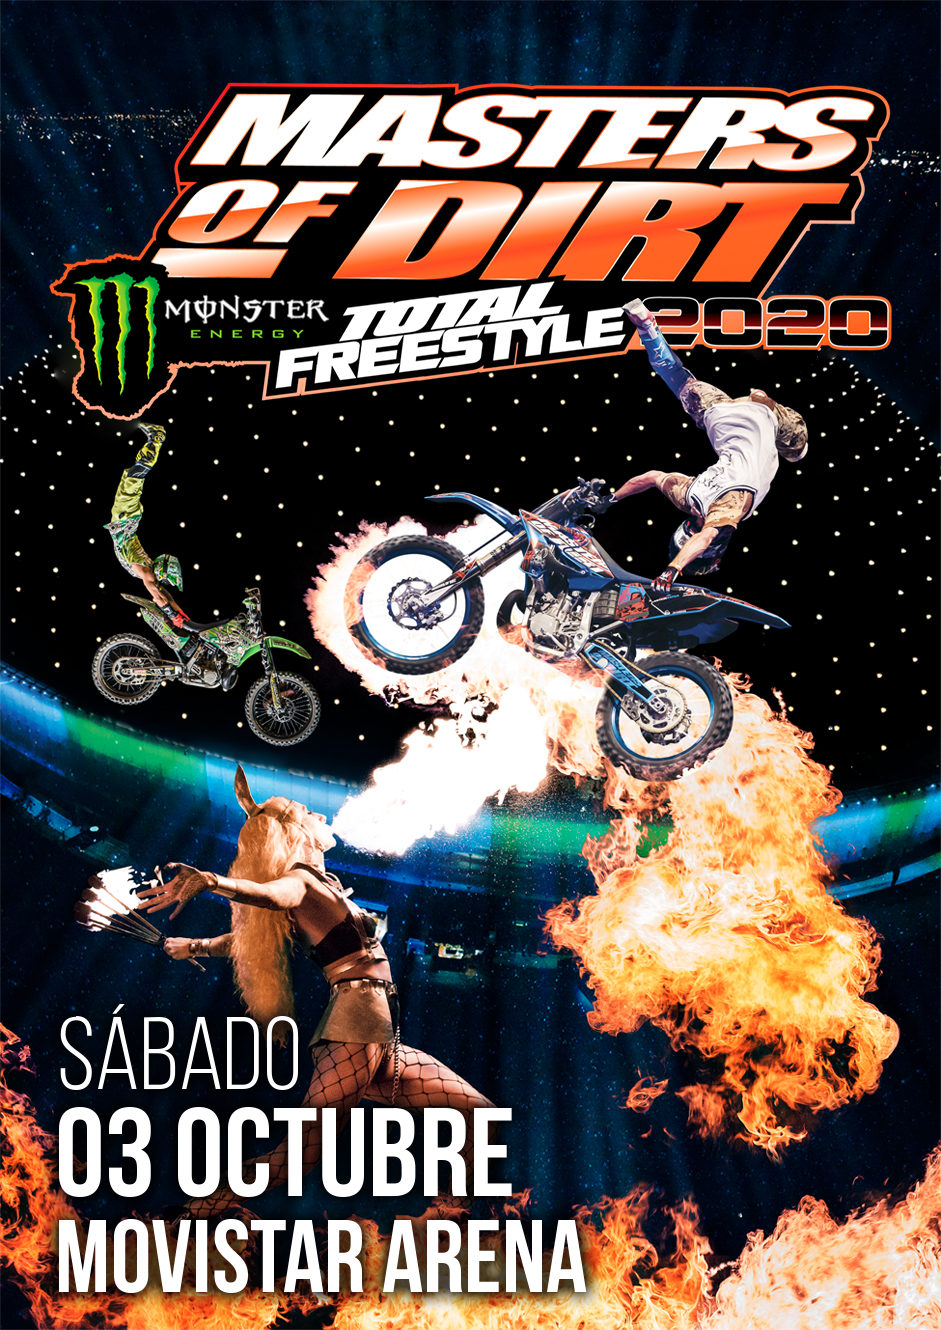 Masters of Dirt - Total Freestyle 2020